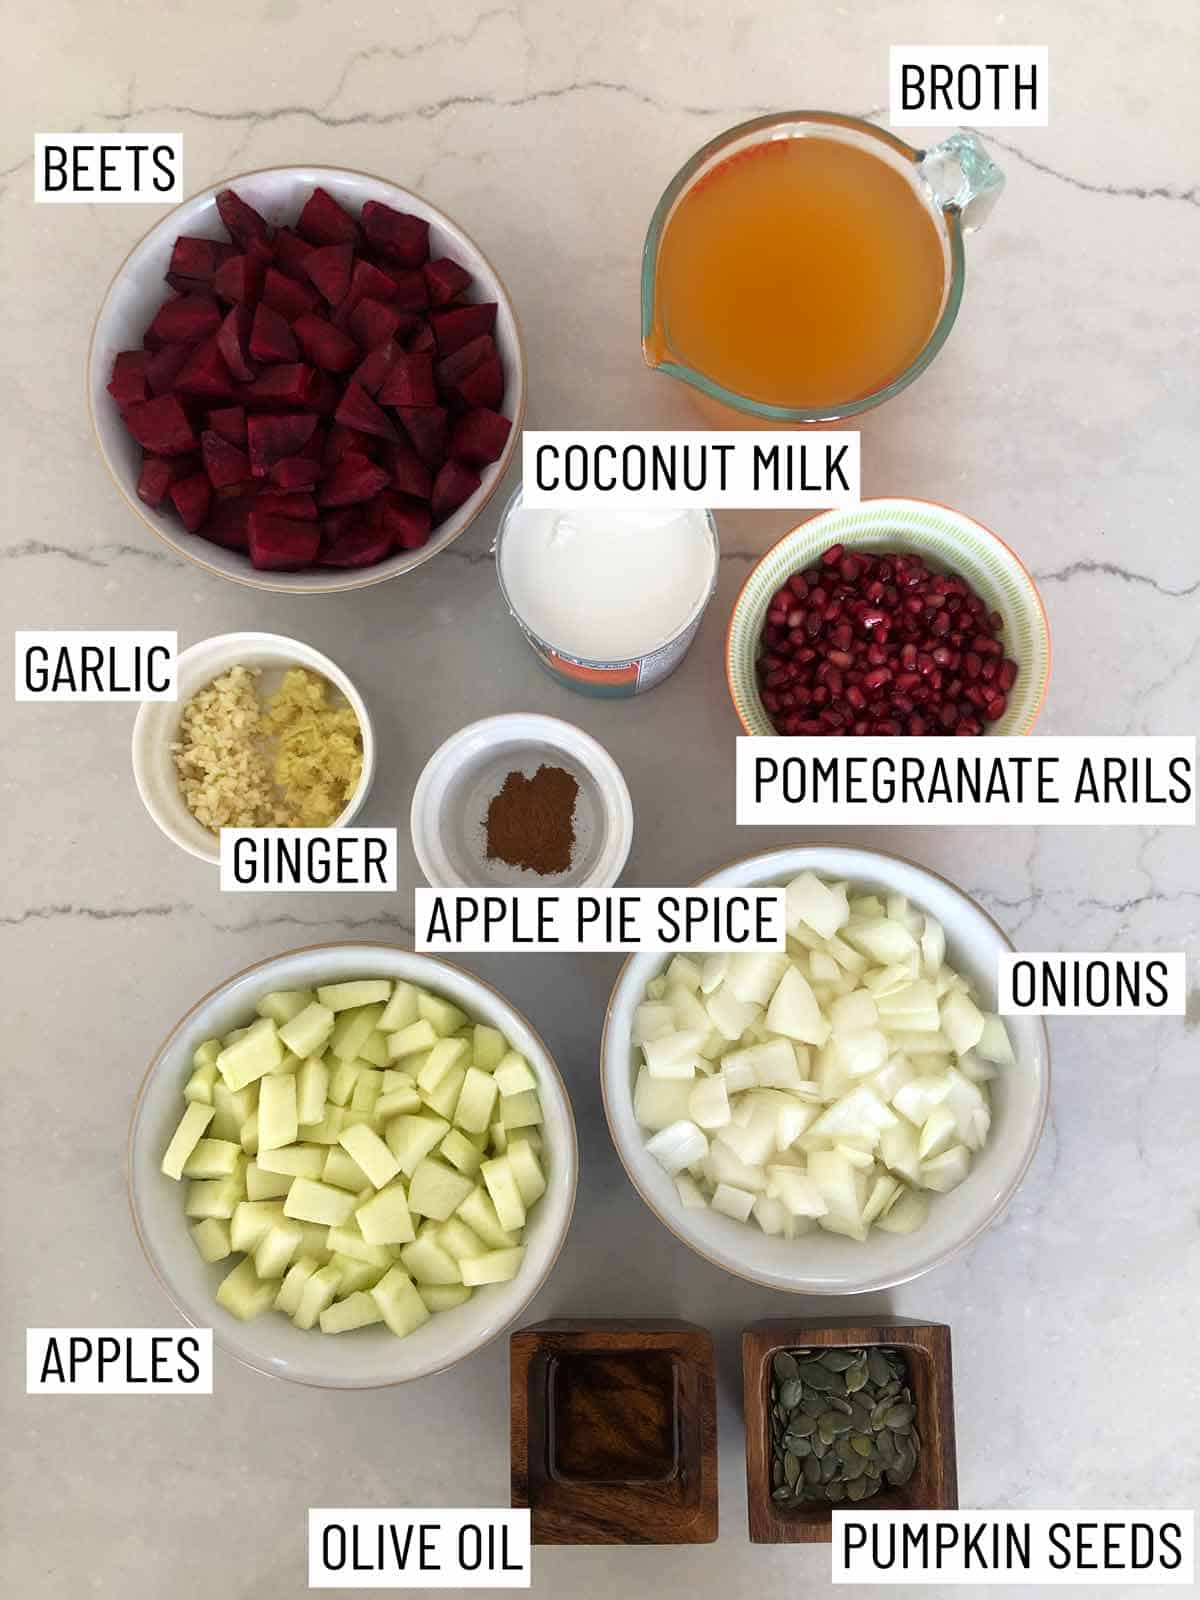 Overhead image of ingredients: broth, coconut milk, pomegranate arils, onions, pumpkin seeds, olive oil, apples, apple pie spice, ginger, garlic, and beets.